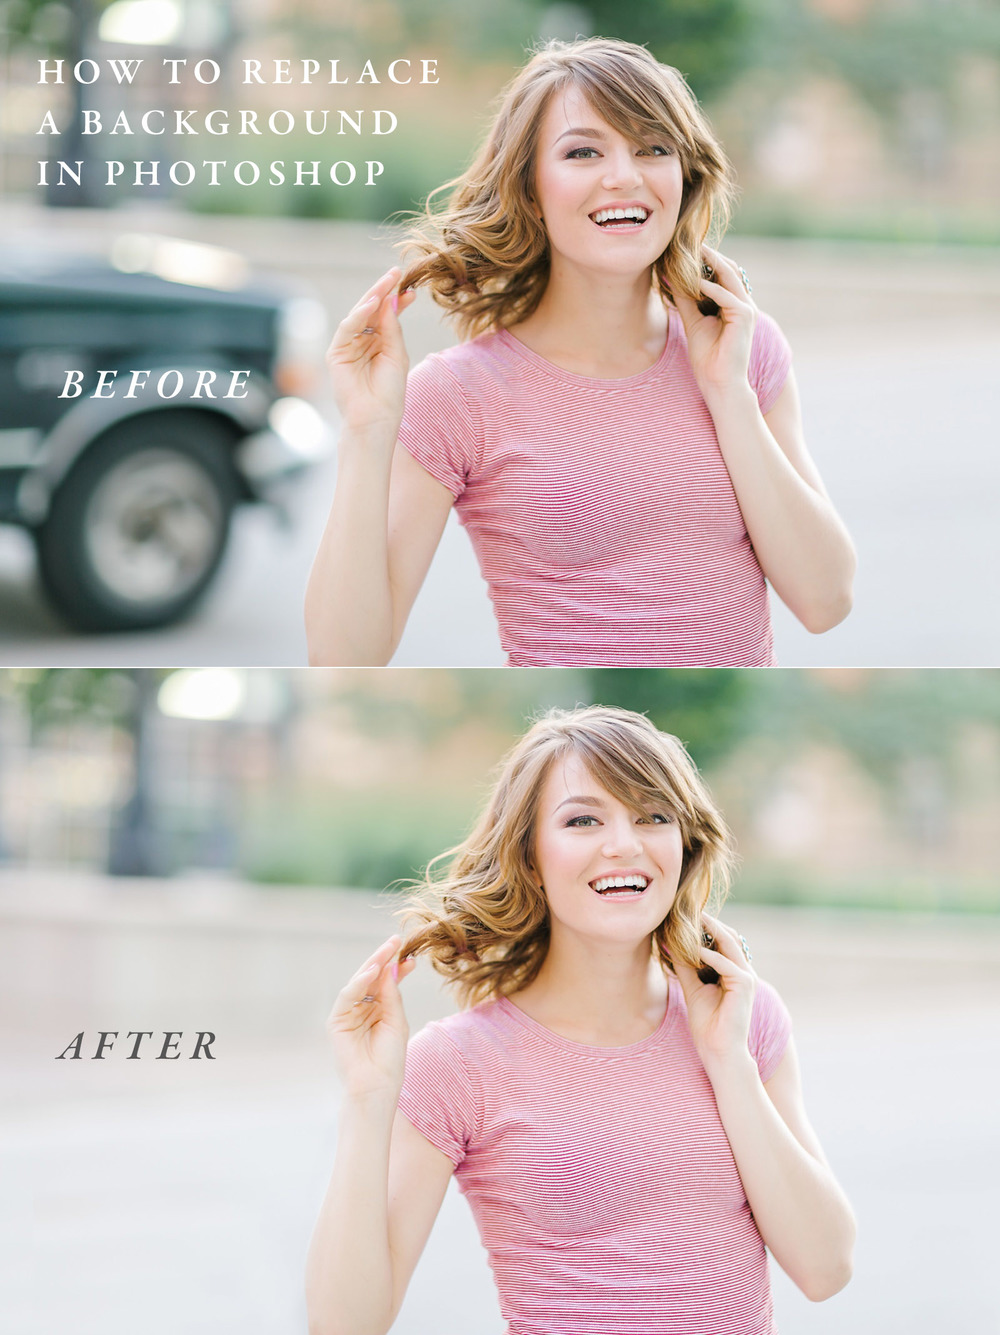 How to easily replace the background of an image in Photoshop CC